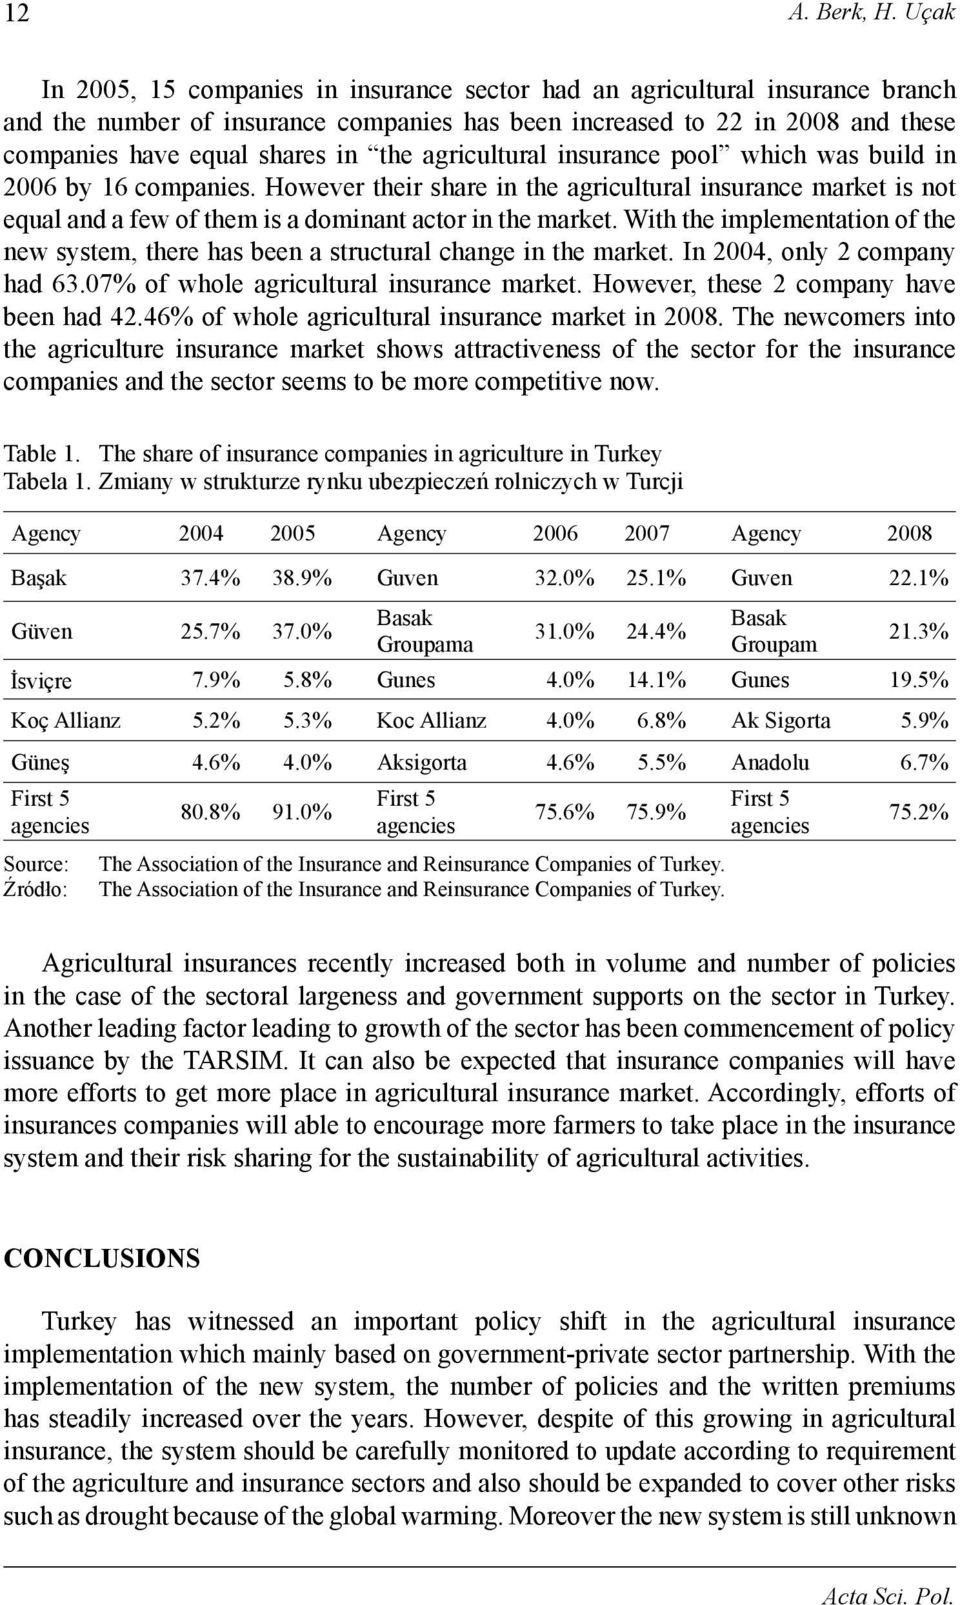 agricultural insurance pool which was build in 2006 by 16 companies. However their share in the agricultural insurance market is not equal and a few of them is a dominant actor in the market.